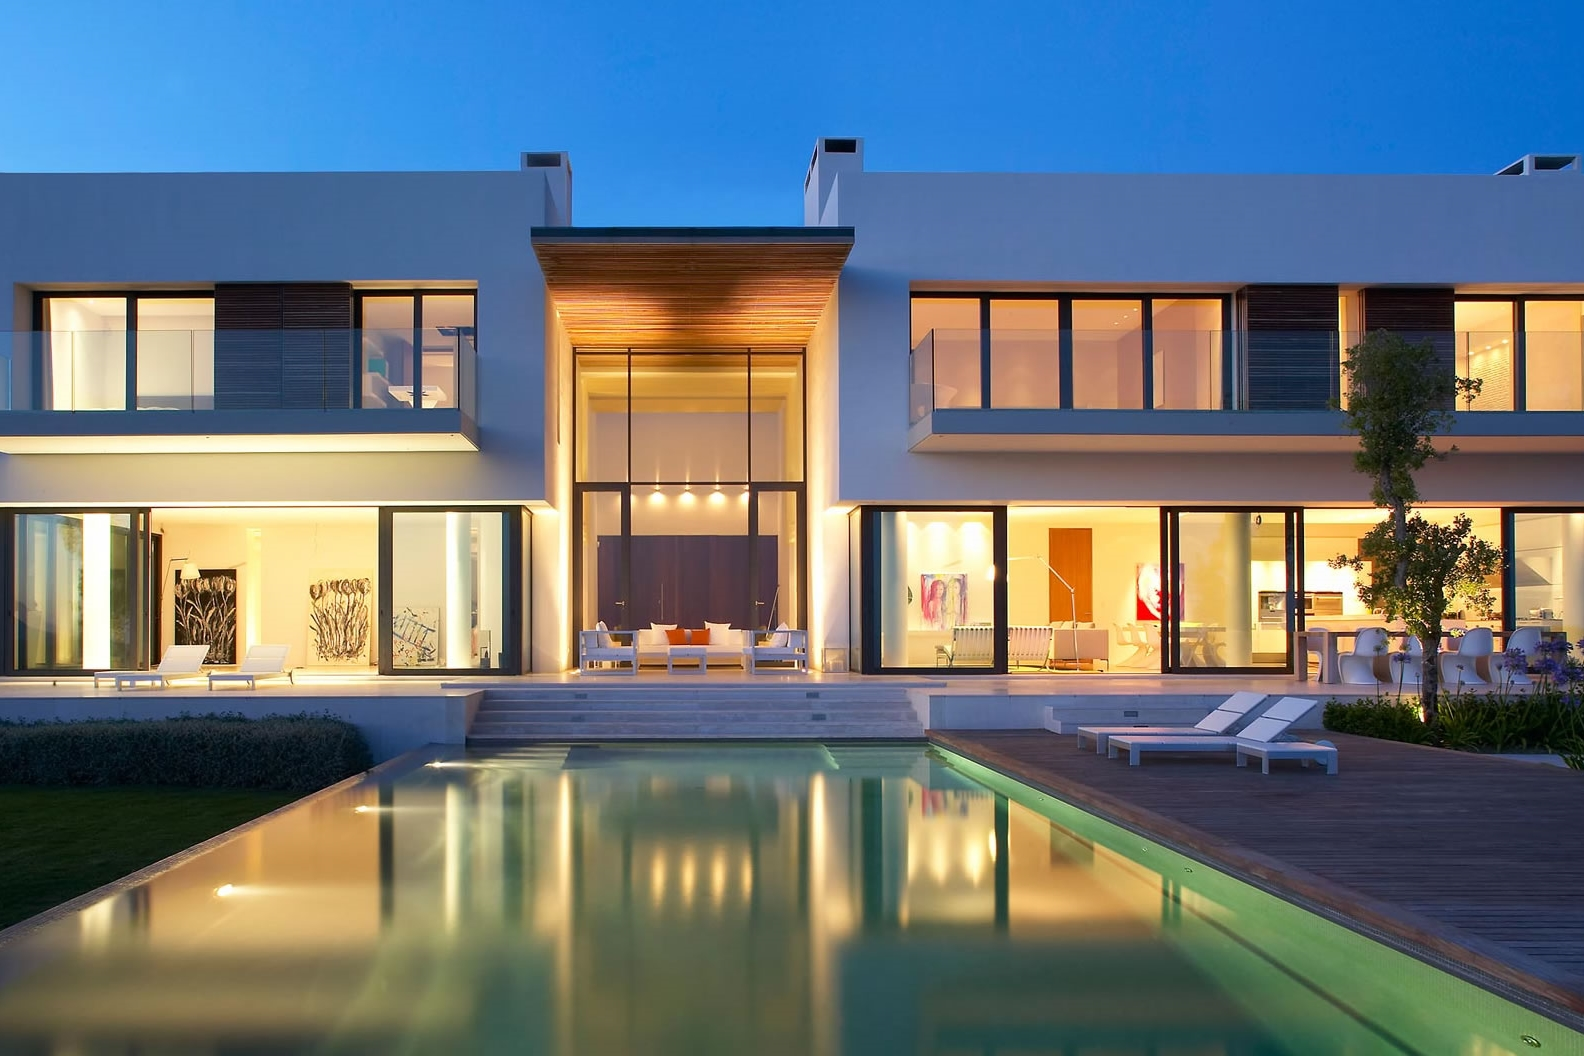 dream-homes-1790x1056-home-dream-homes-in-la-sell-your-century-city-or-westwood-home-moyuc.com.jpg